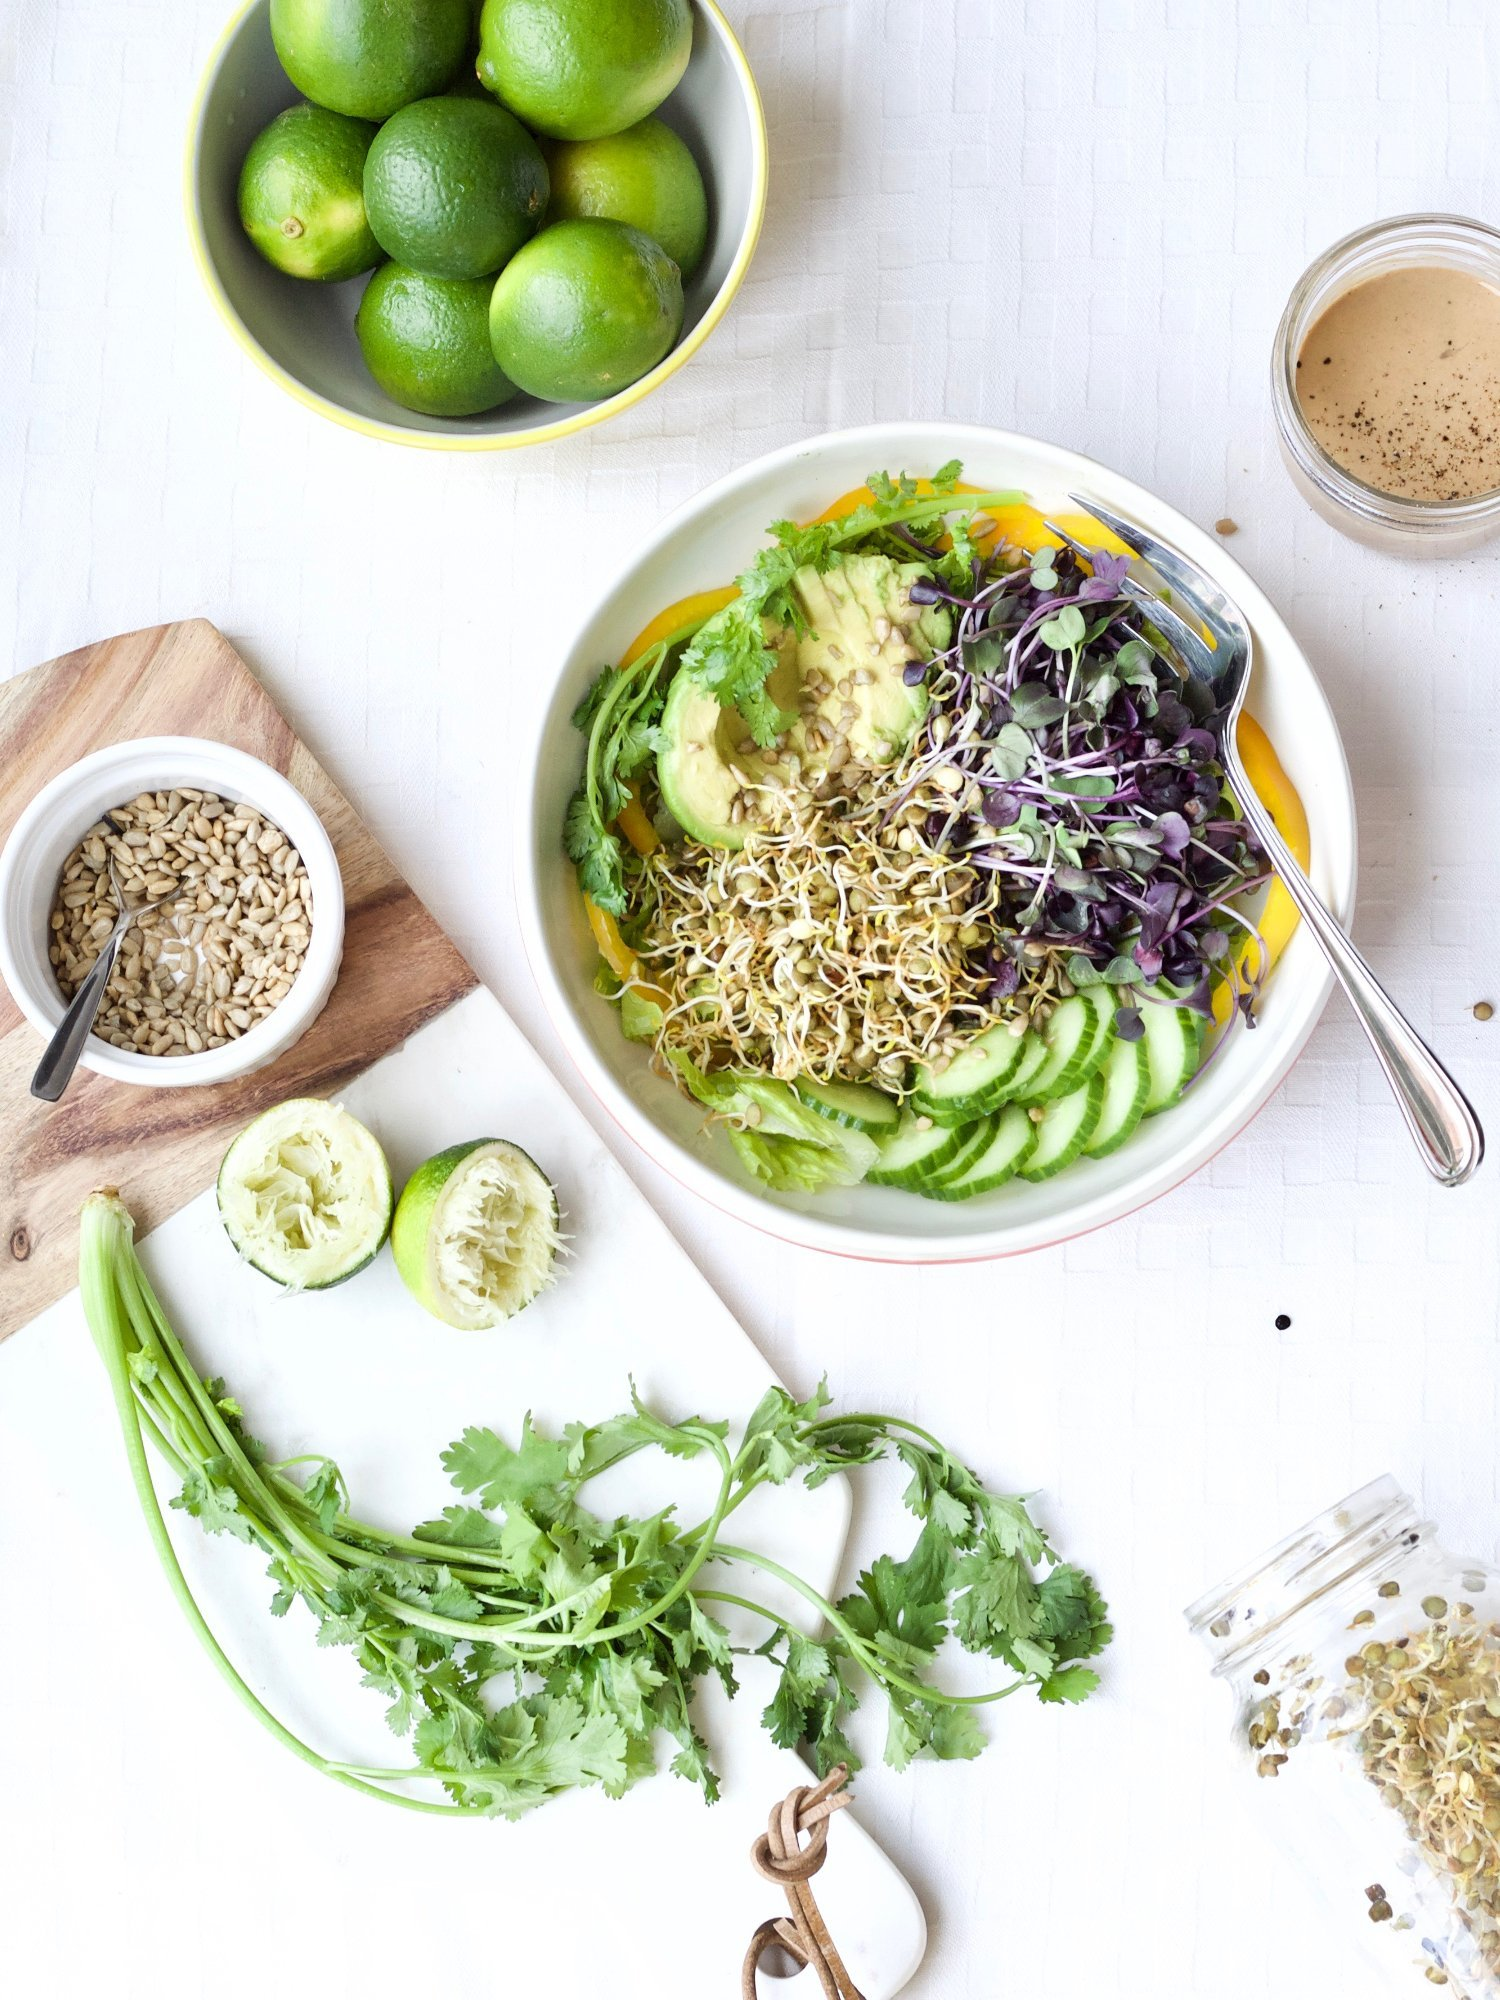 Sprouted French Green Lentils and Purple Radish Sprouts make a great looking salad! The tahini lime dressing is a perfect dressing for a salad containing sprouts. The dressing is also super versatile. Gluten-free and vegetarian!